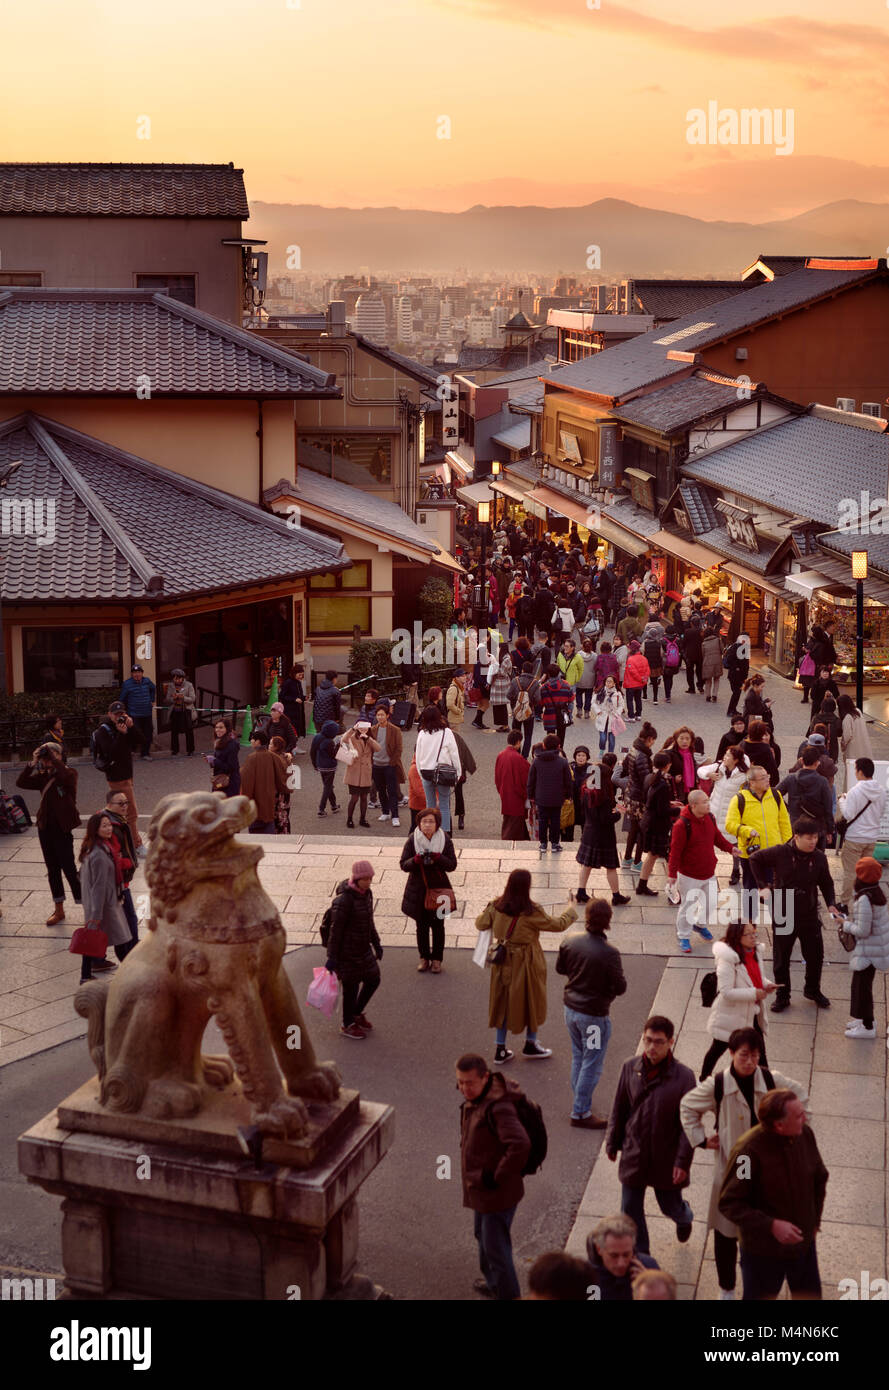 Matsubara dori street at sunset in autumn, busy with tourists and visitors at the entrance to Kiyomizu-dera Buddhist - Stock Image